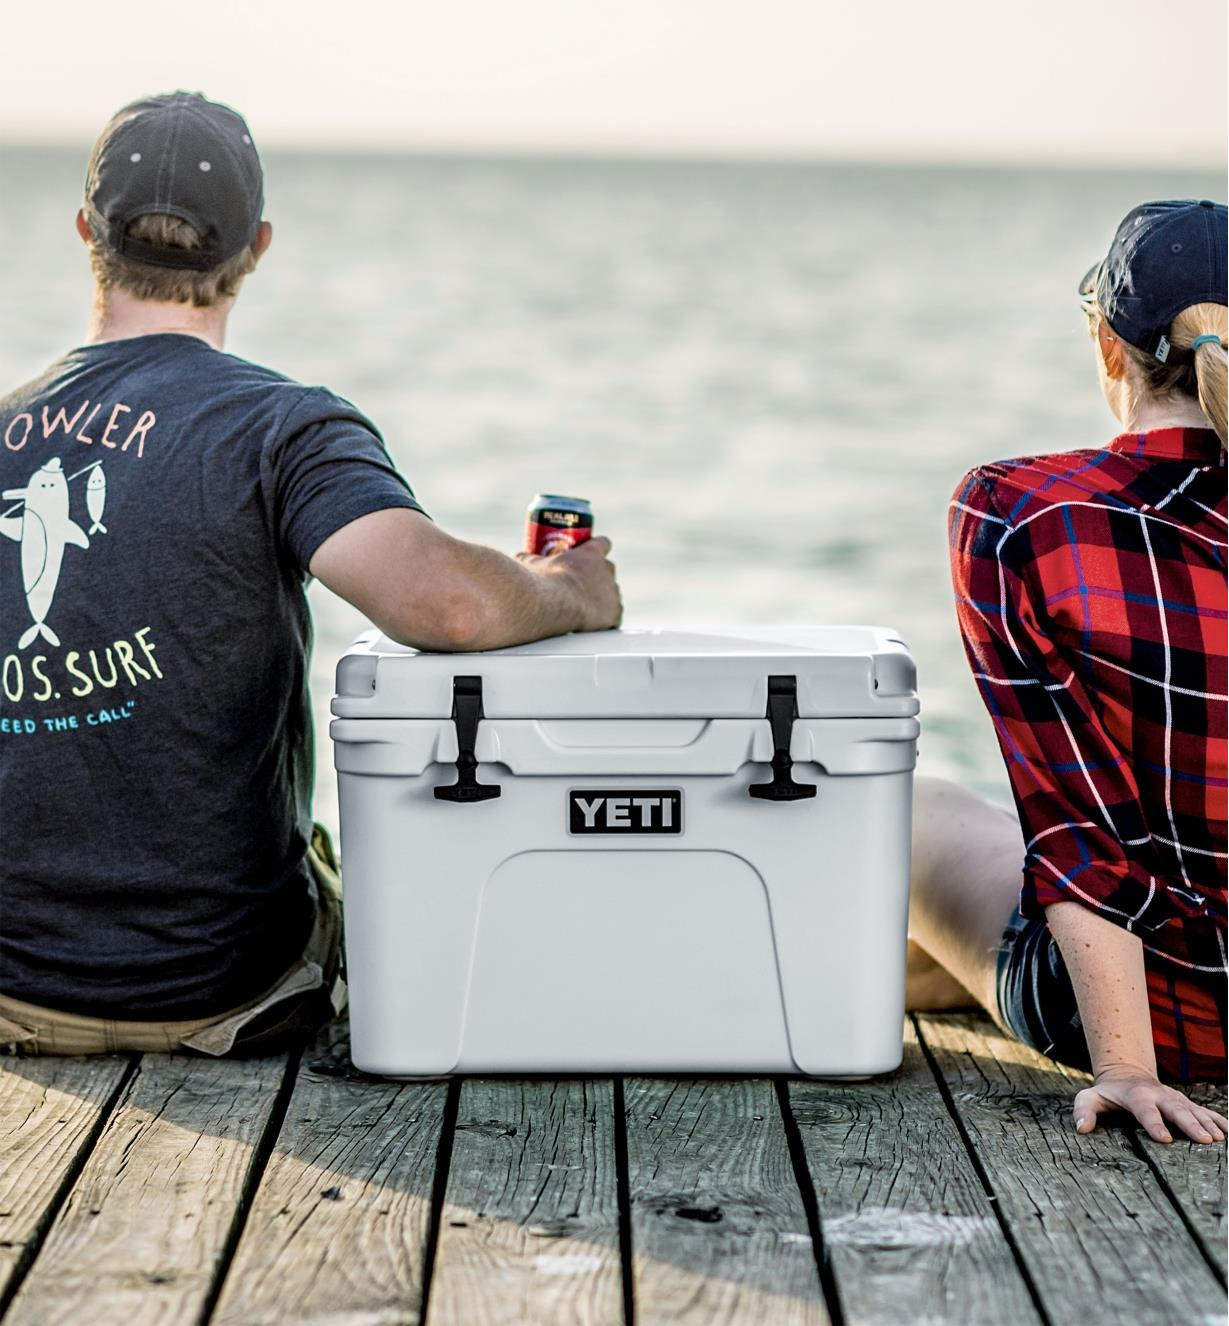 A man and woman sitting on a dock with a Yeti cooler between them